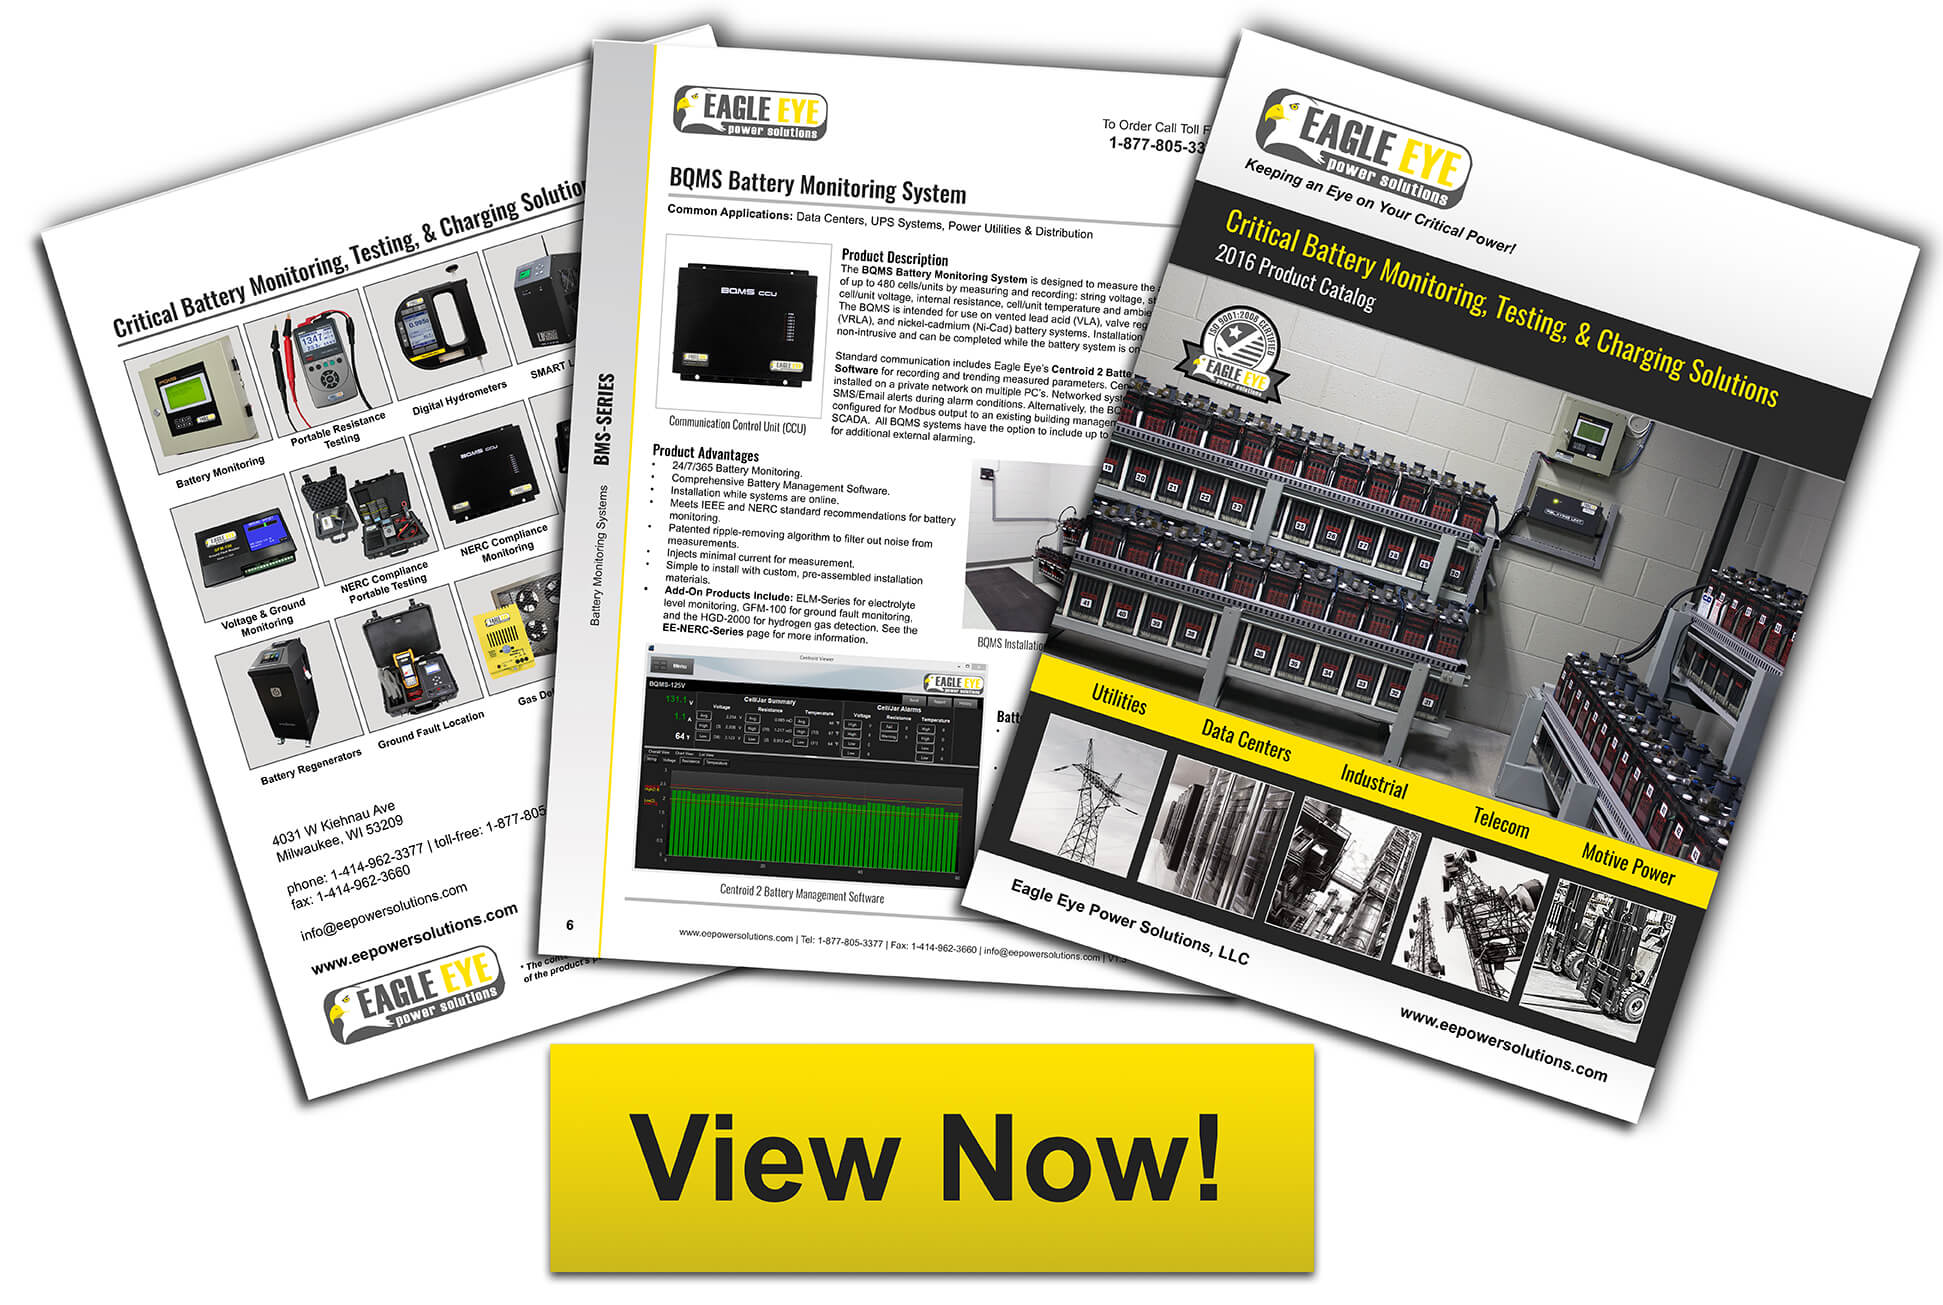 Eagle Eye 2014 Battery Testing Catalog